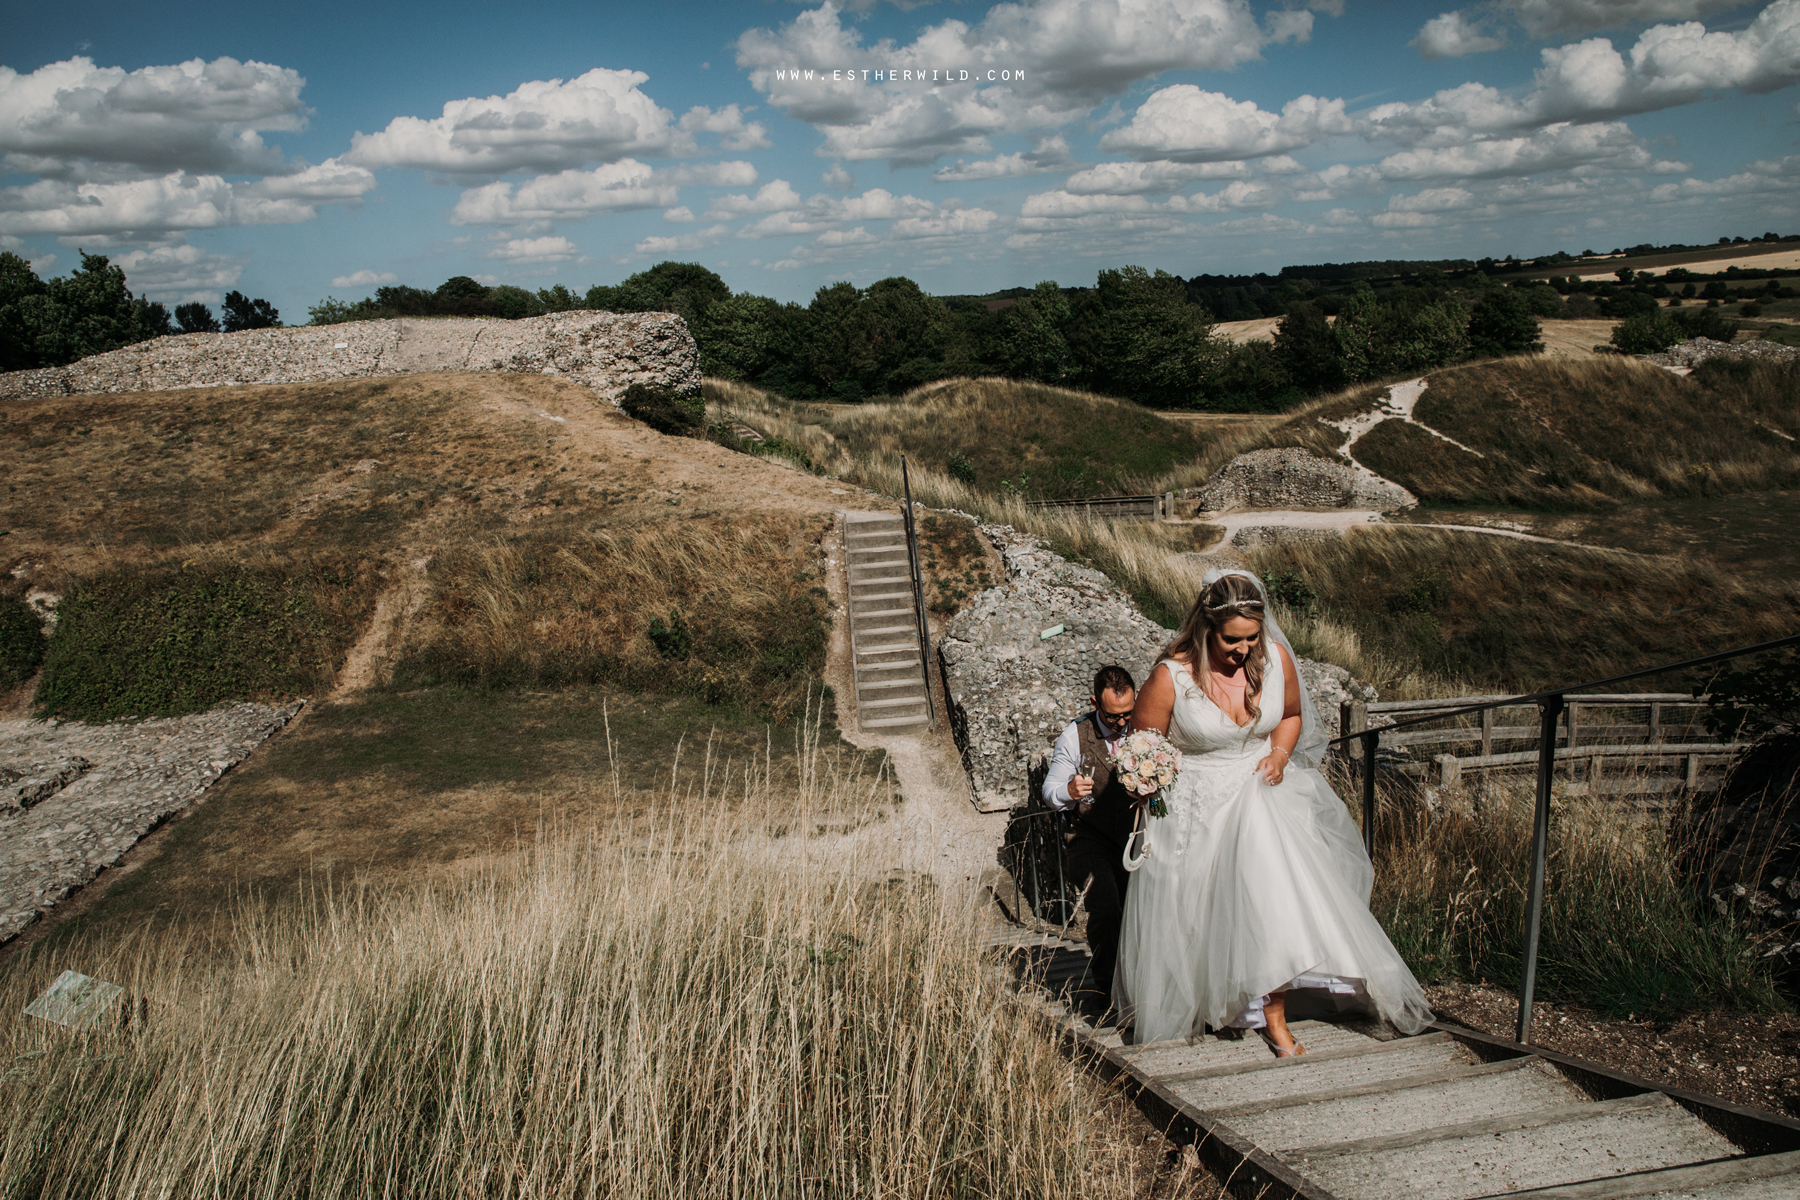 Swaffham_Wedding_Castle_Acre_Norfolk_Esther_Wild_Photographer_Wedding_Photography_3R8A1397.jpg